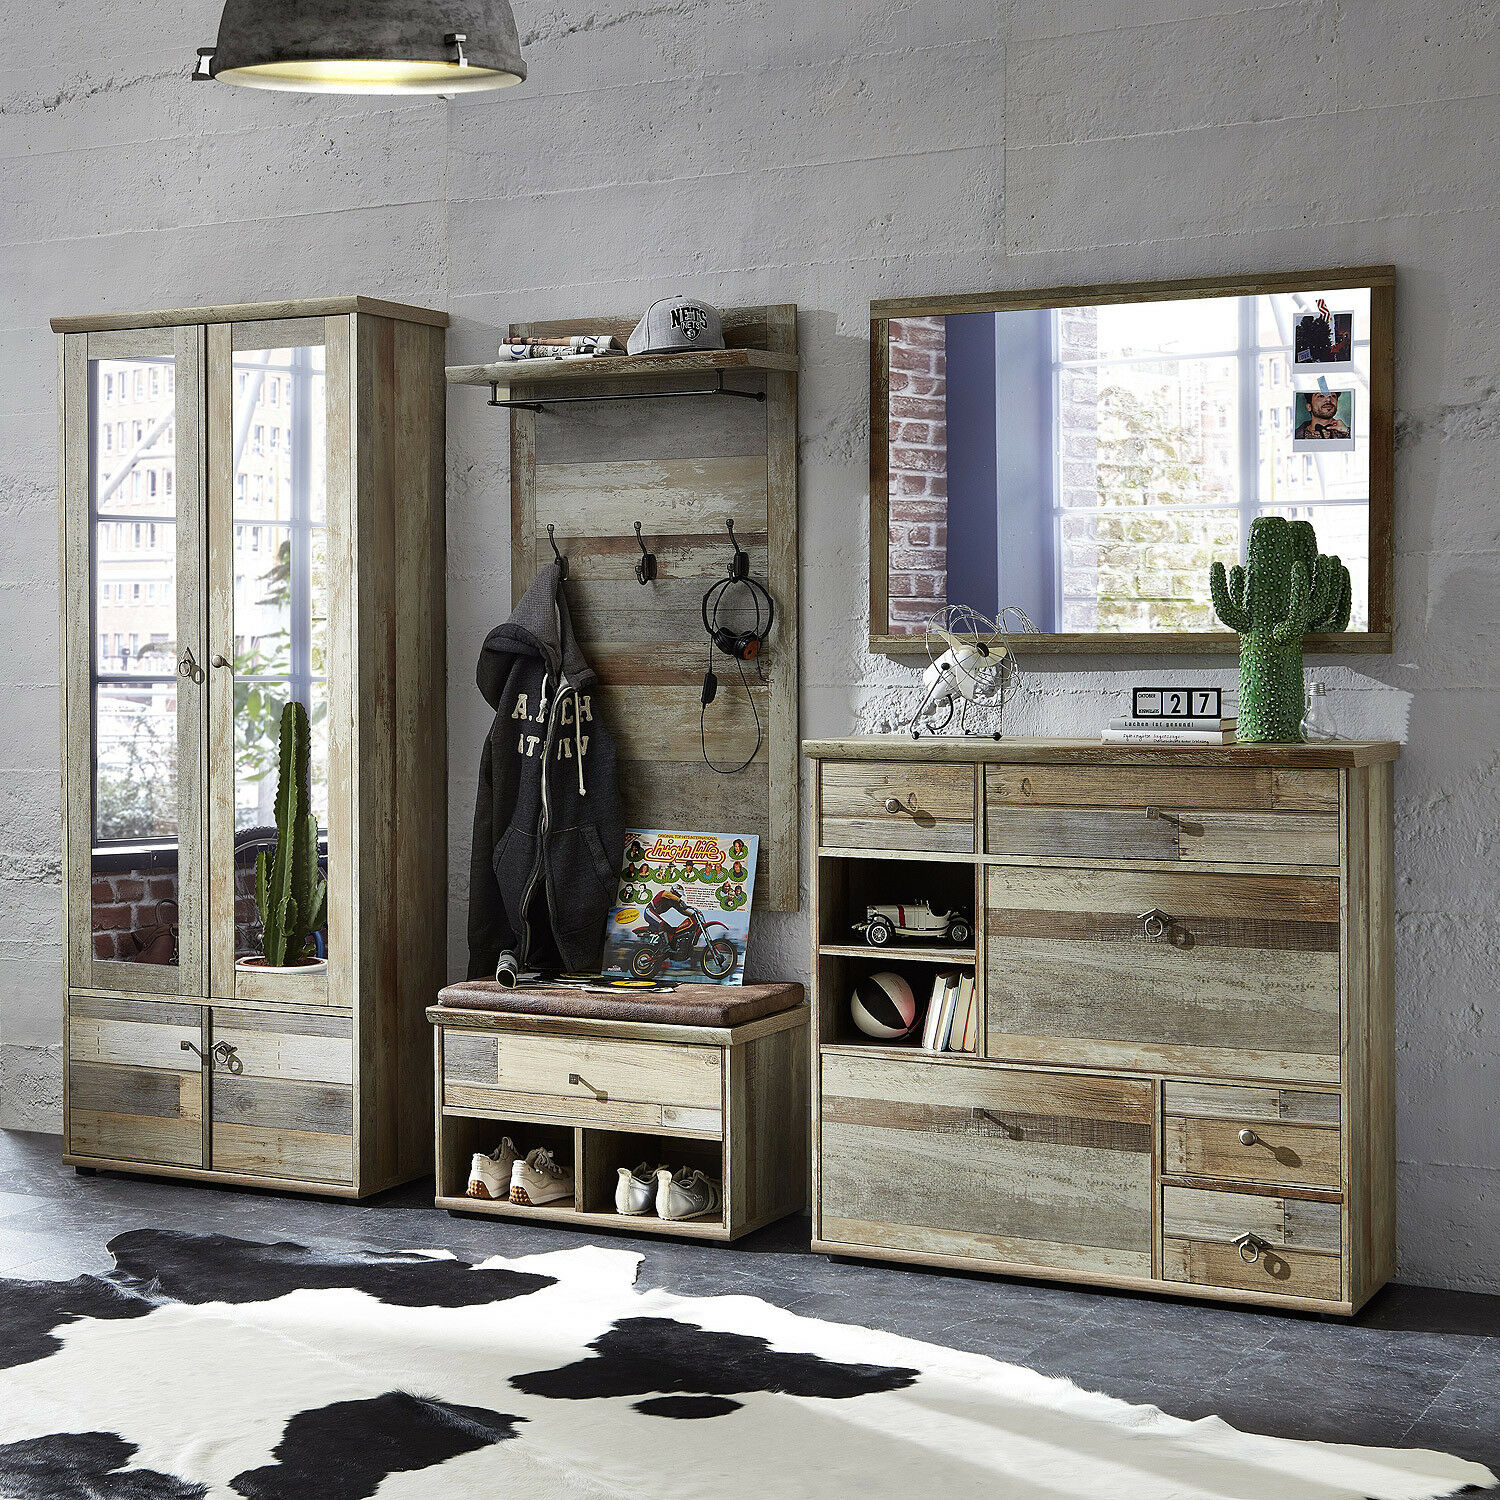 garderobenset bonanza schrank schuhschrank paneel spiegel bank driftwood eur 699 95 picclick de. Black Bedroom Furniture Sets. Home Design Ideas